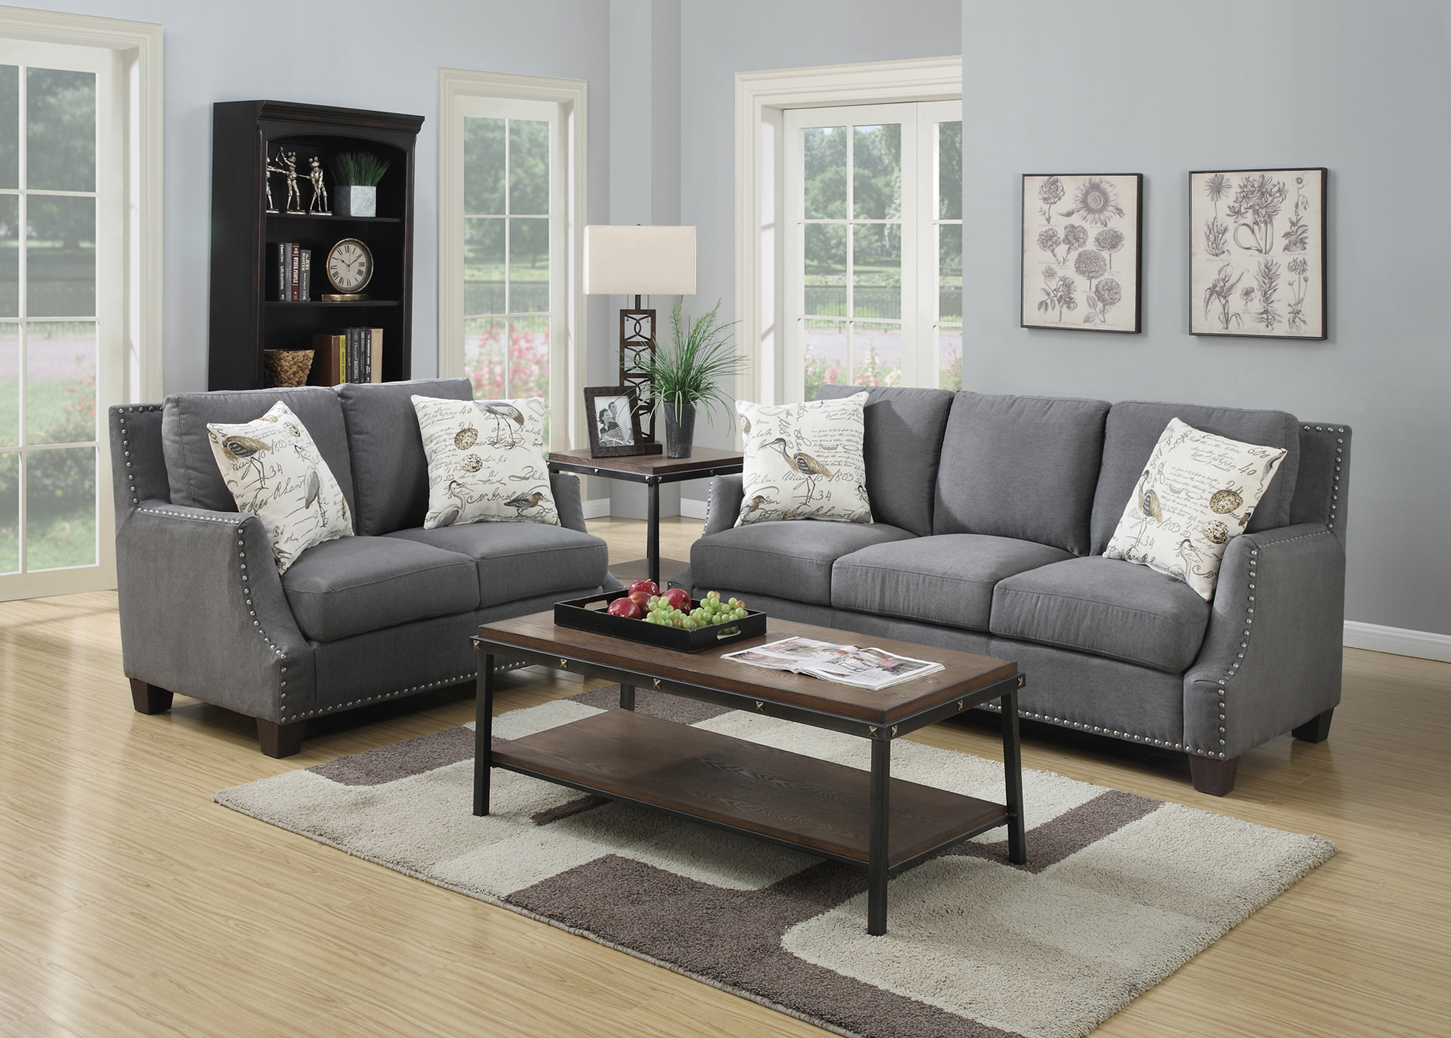 GL6629 August Sofa Set